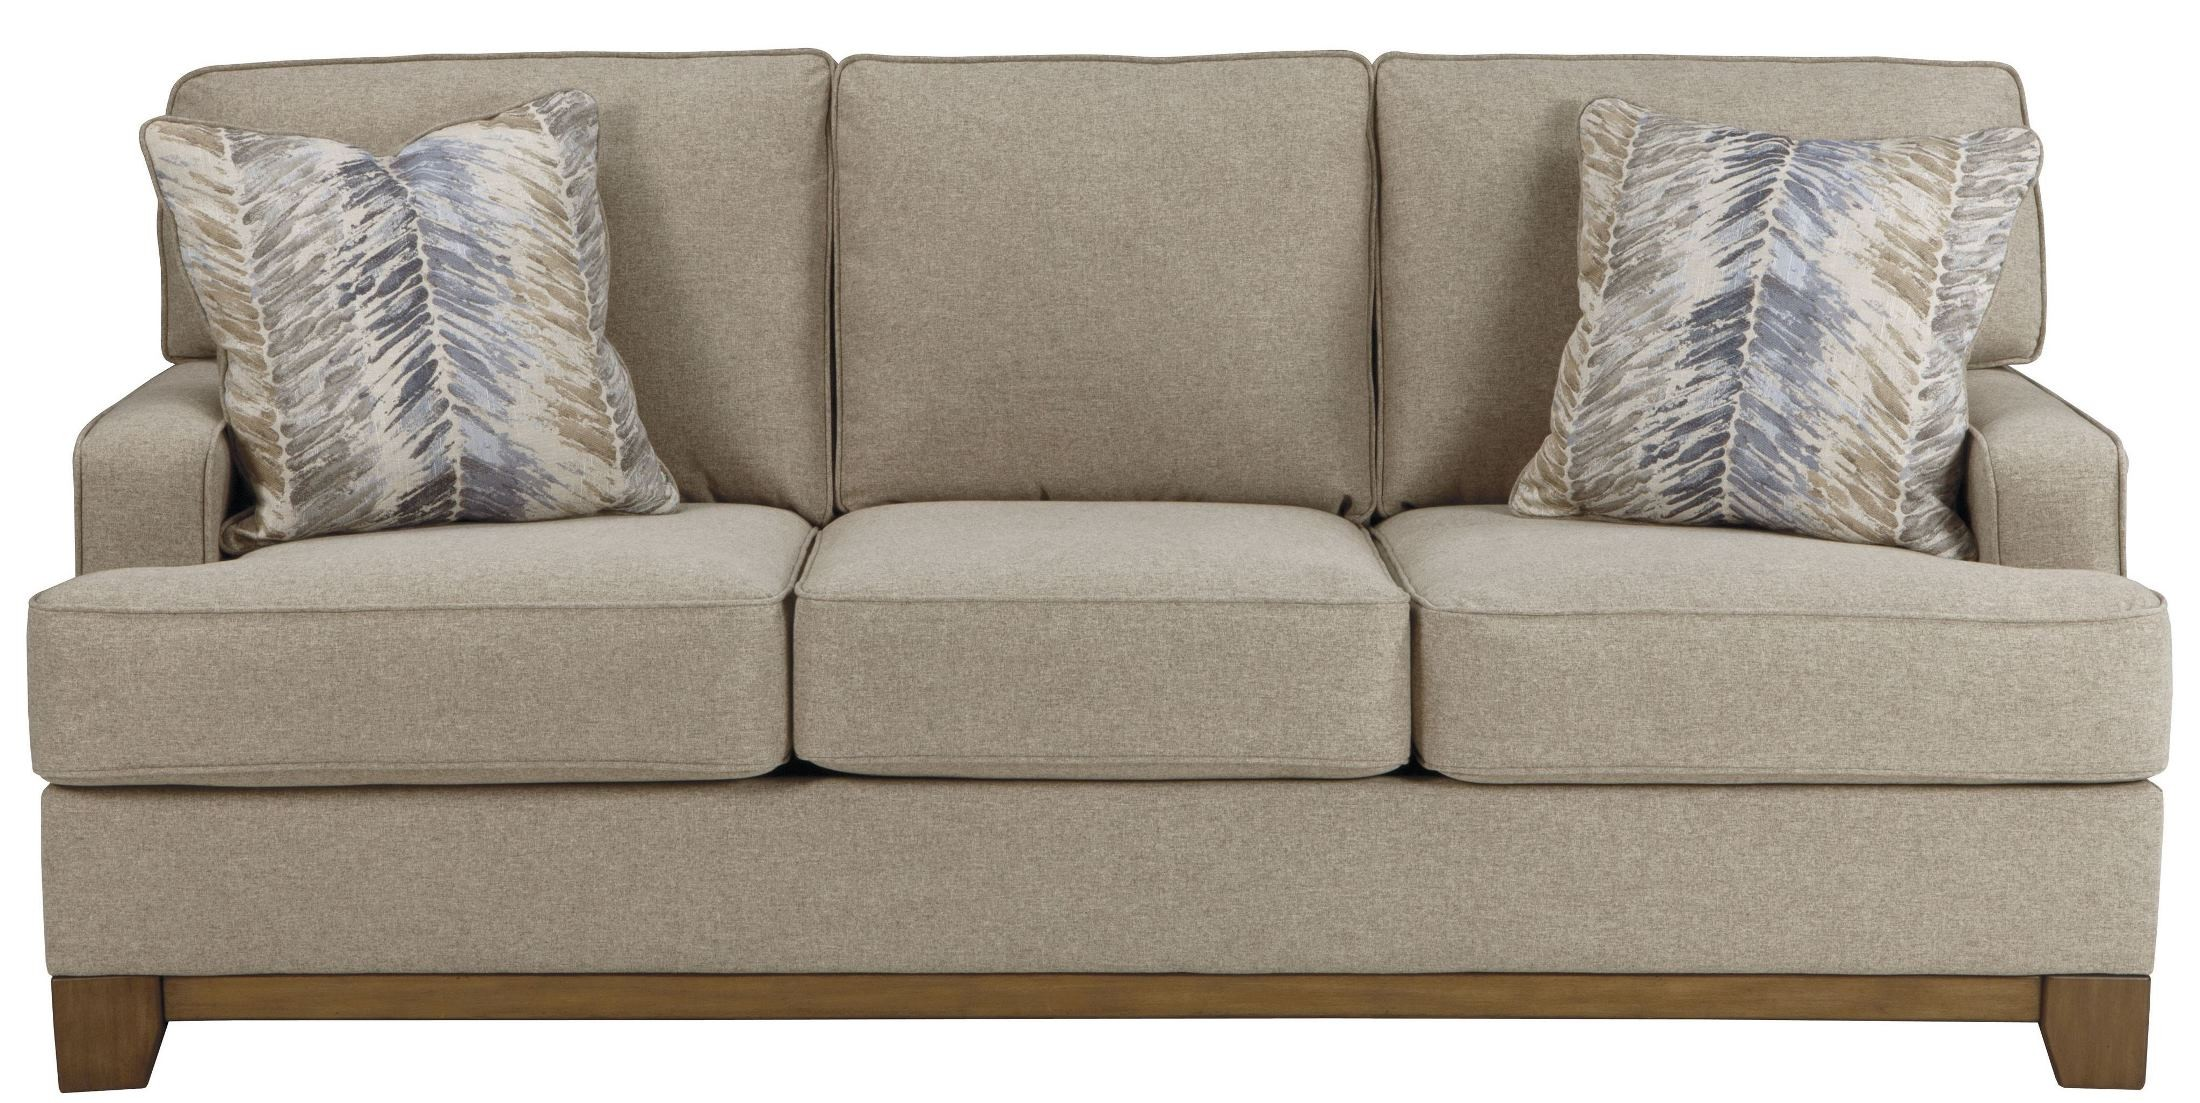 Hillsway Pebble Sofa From Ashley Coleman Furniture